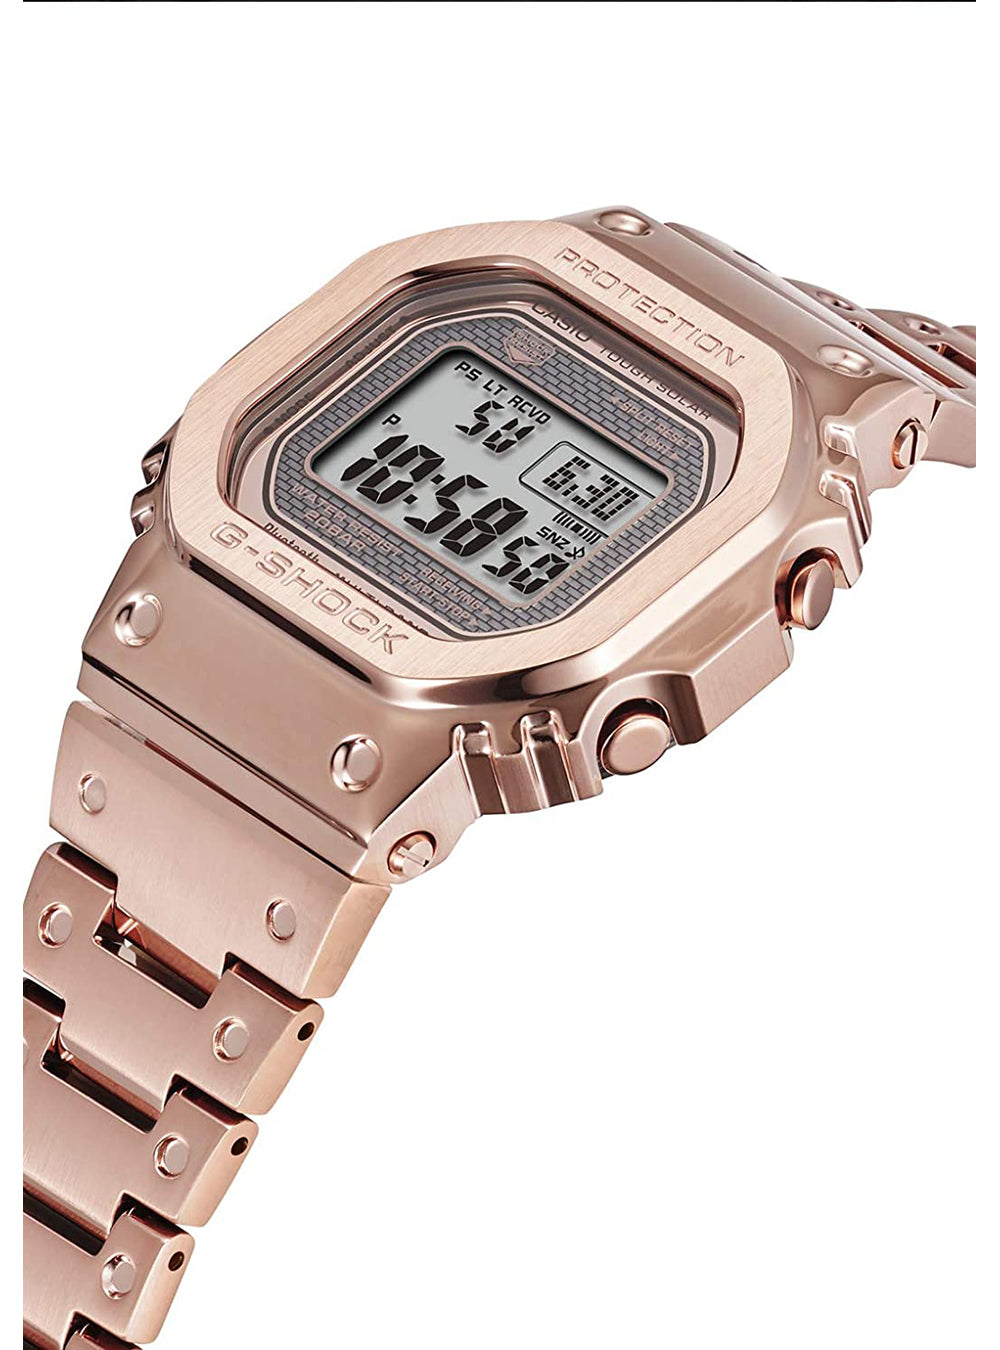 CASIO G-SHOCK FULL METAL GMW-B5000GD-4JF JDM